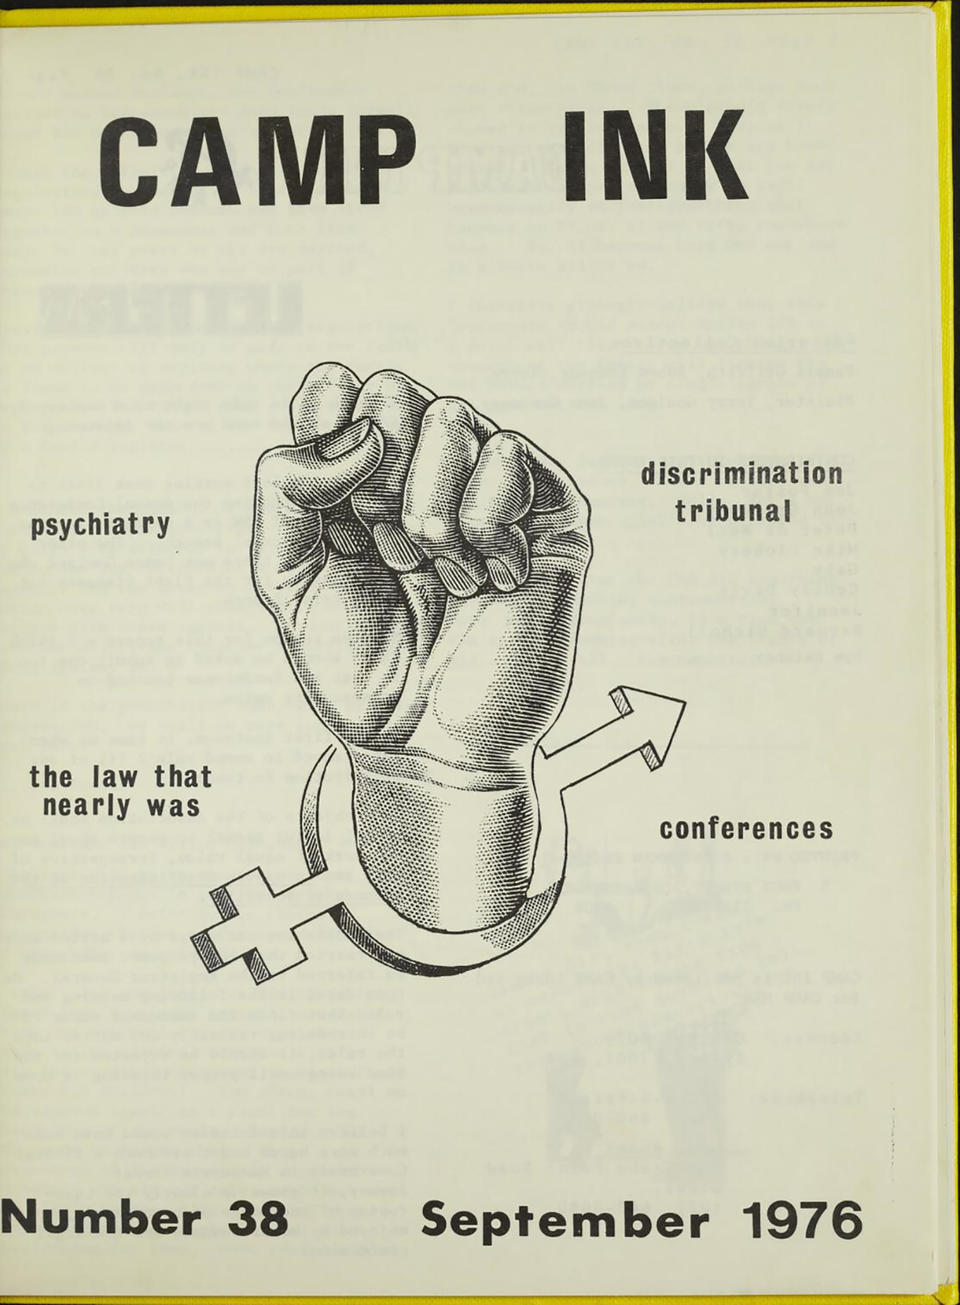 The front page of publication Camp Ink from September 1976